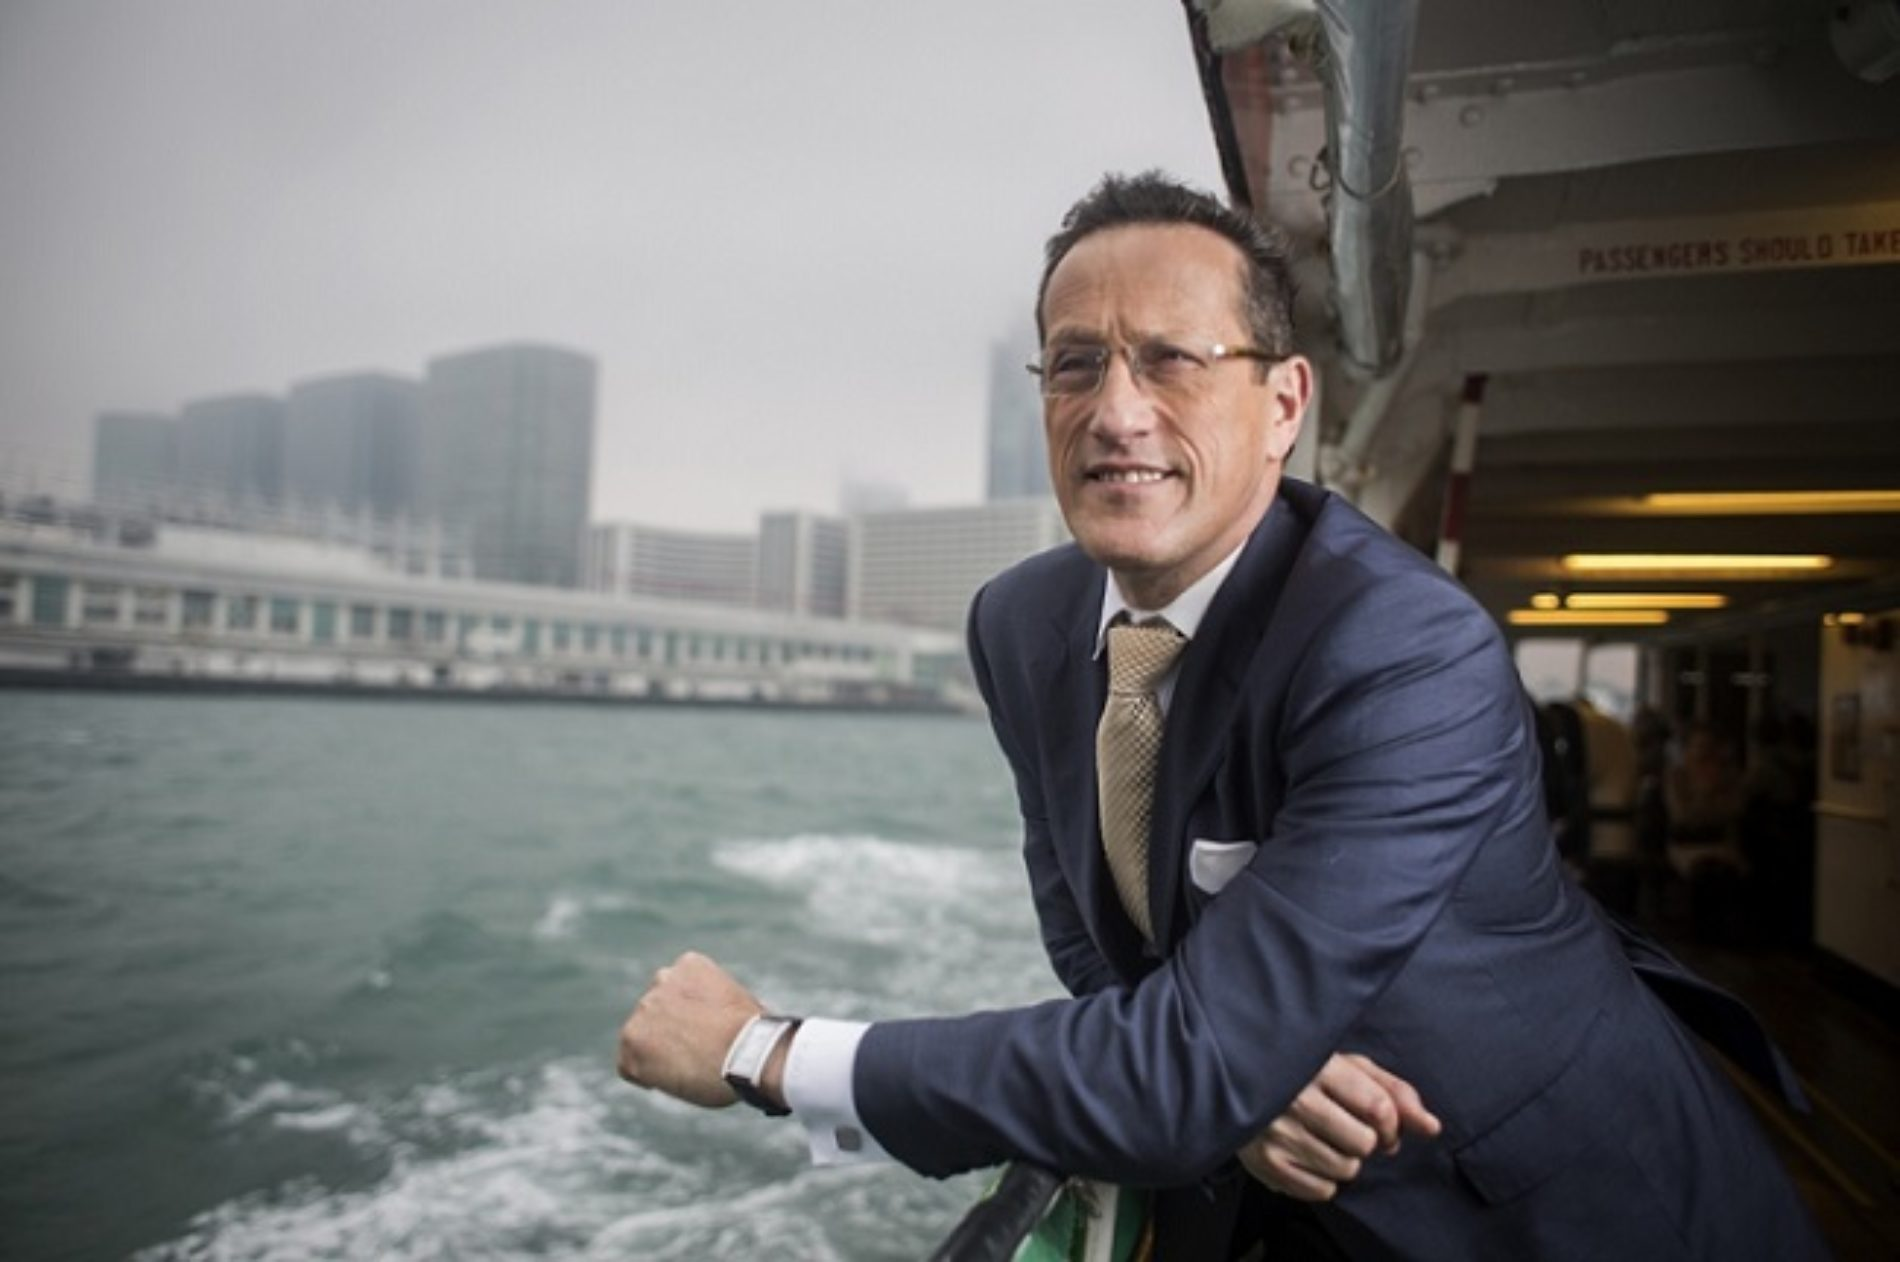 'My worst fears never materialised after coming out' – CNN host Richard Quest reveals